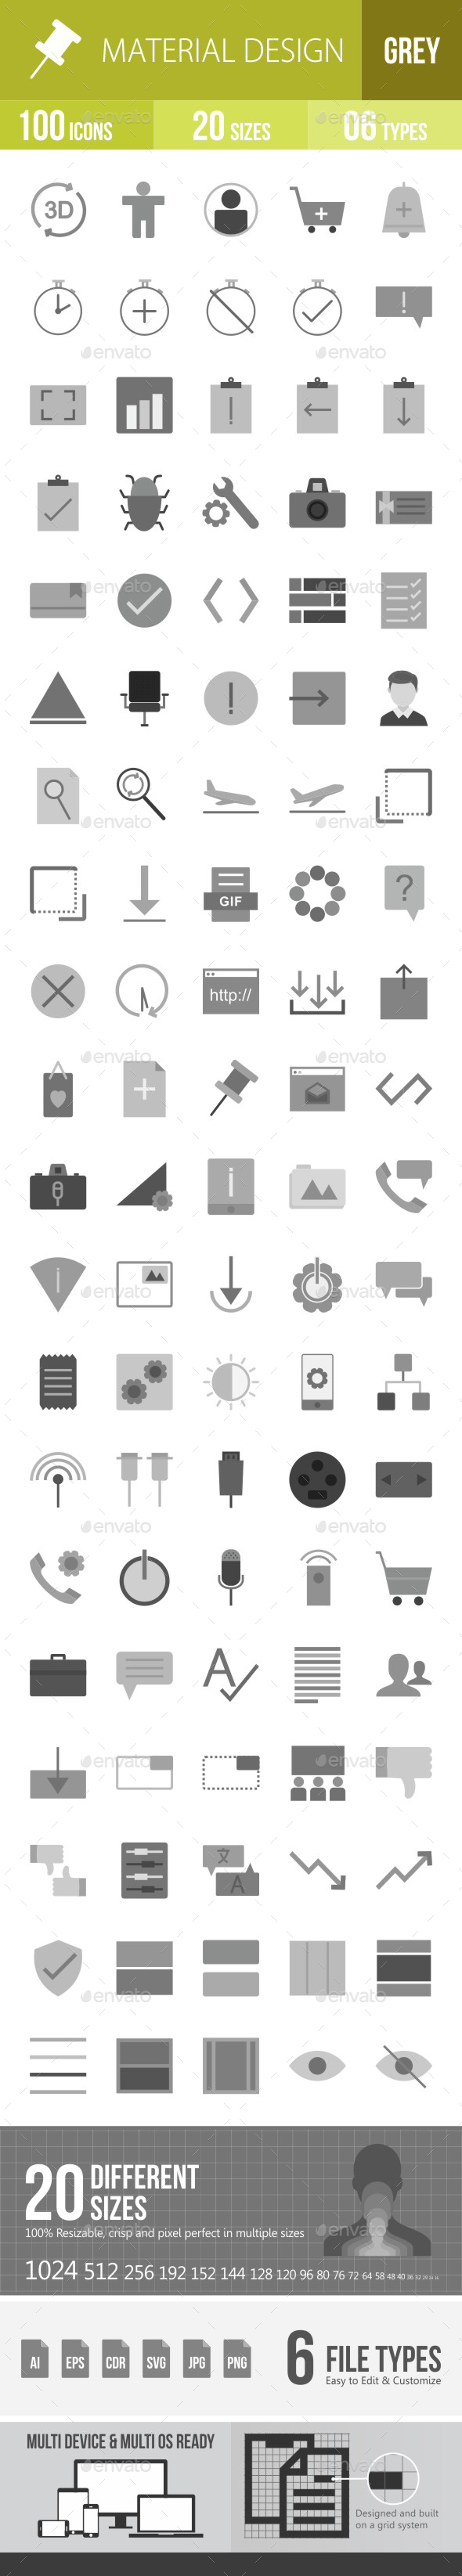 Material Design Flat Round Icons - Icons